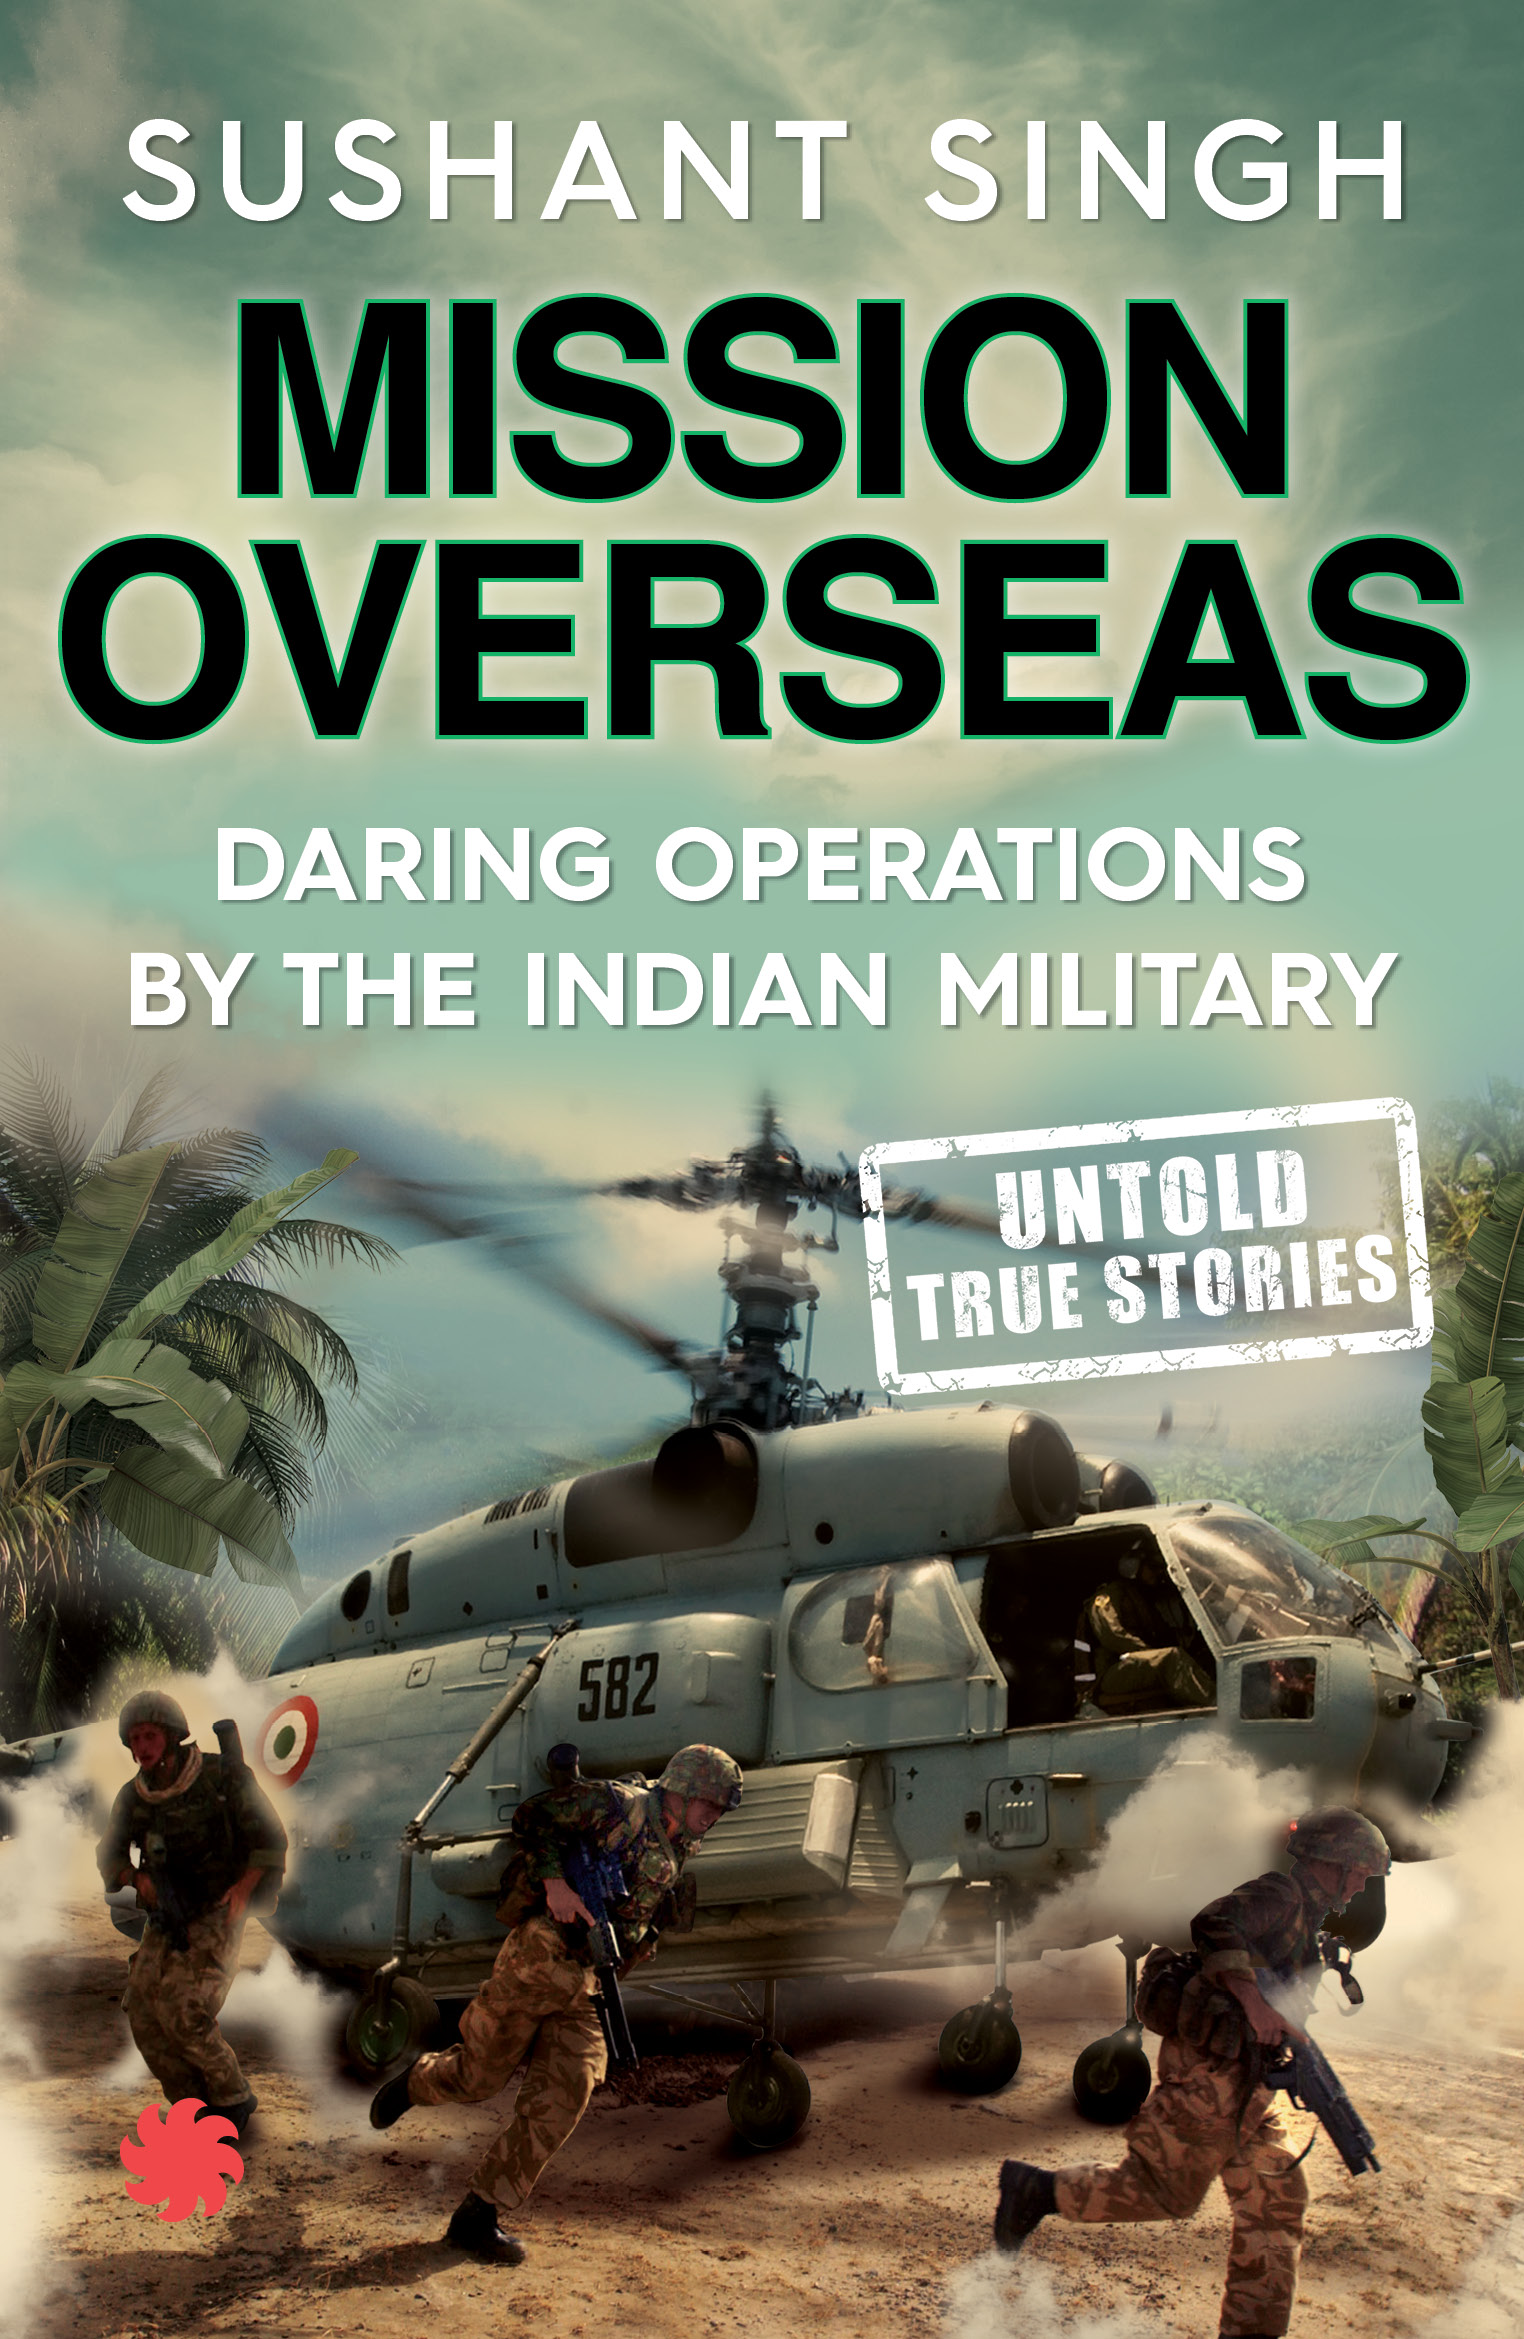 Sushant Singh Mission Overseas: Daring Operations by the Indian Military Juggernaut, 2017